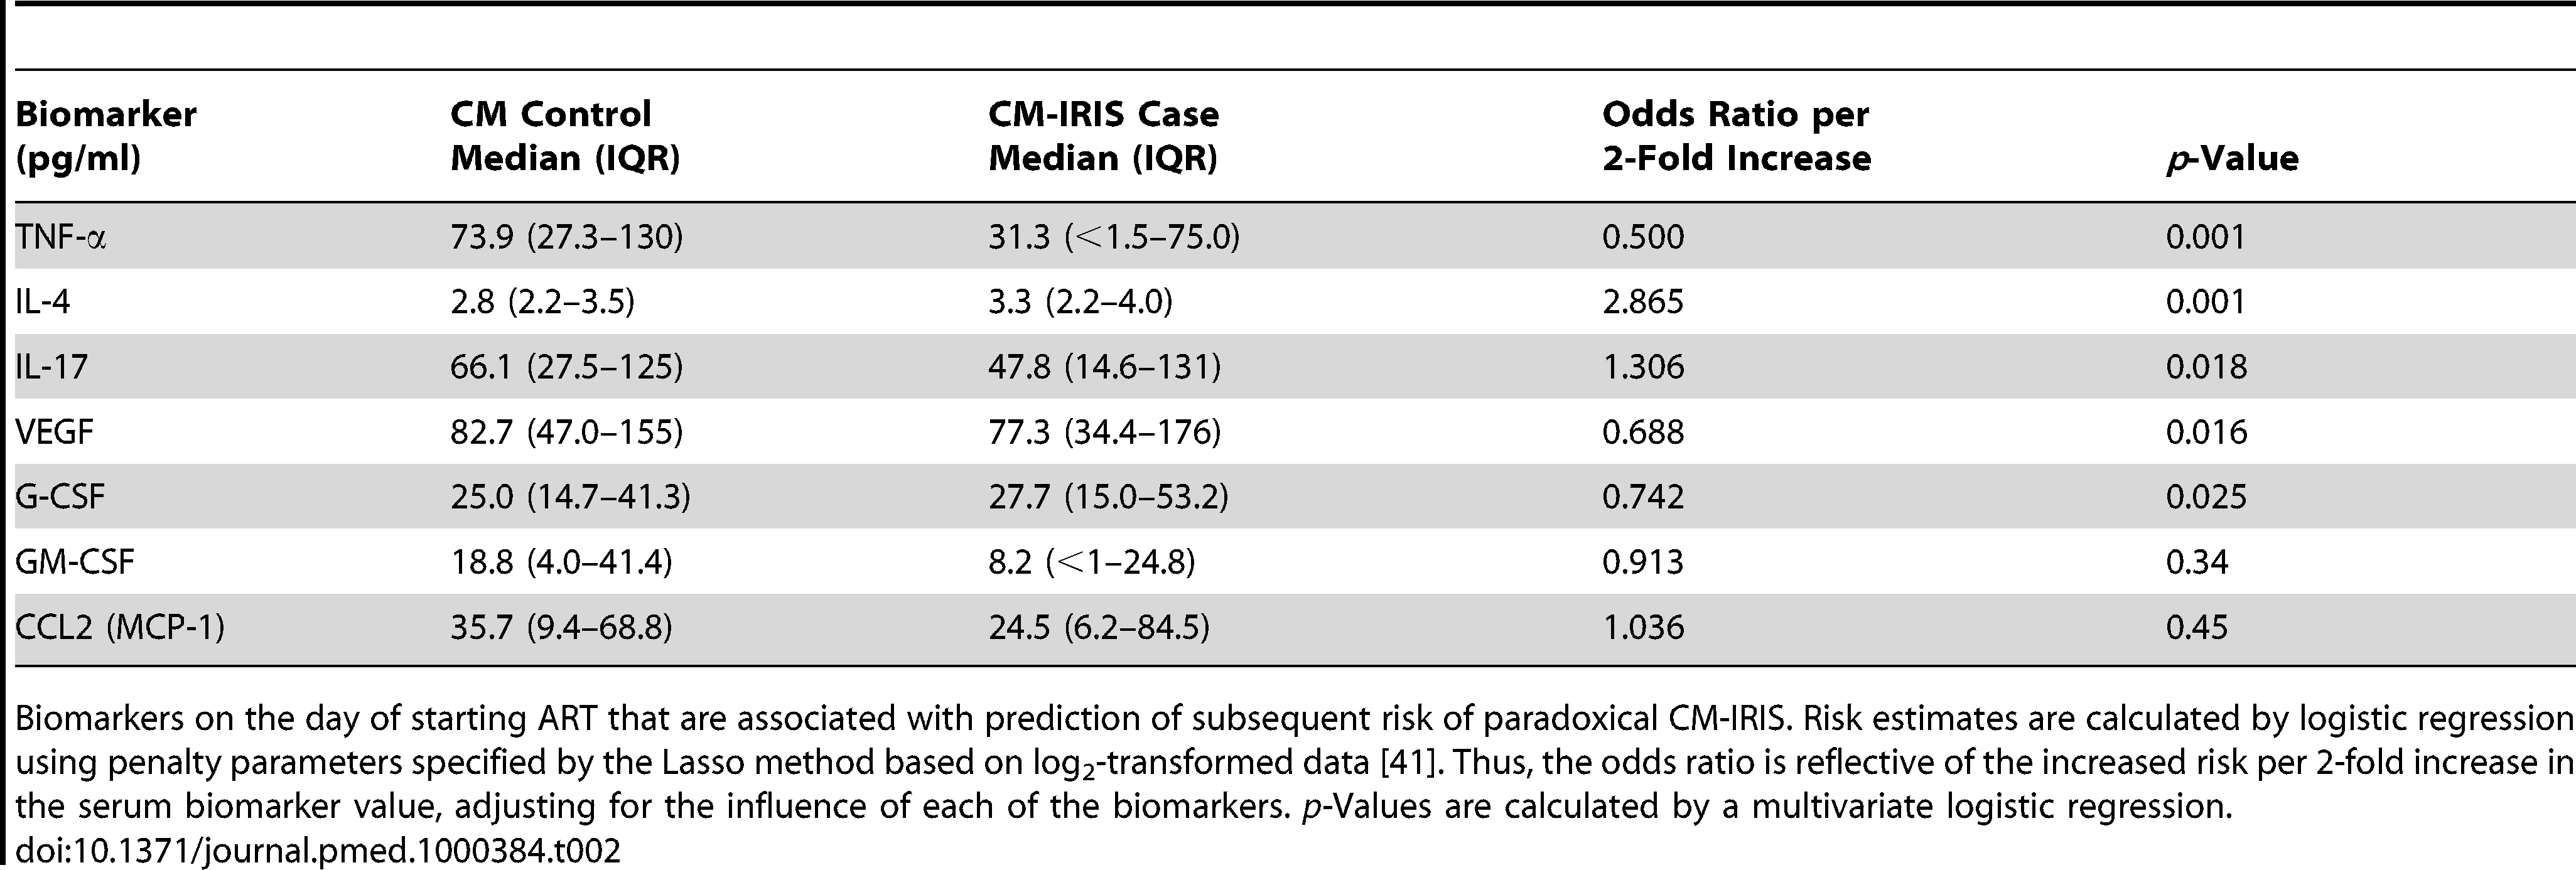 Pre-ART serum biomarkers associated with subsequent paradoxical cryptococcal IRIS.